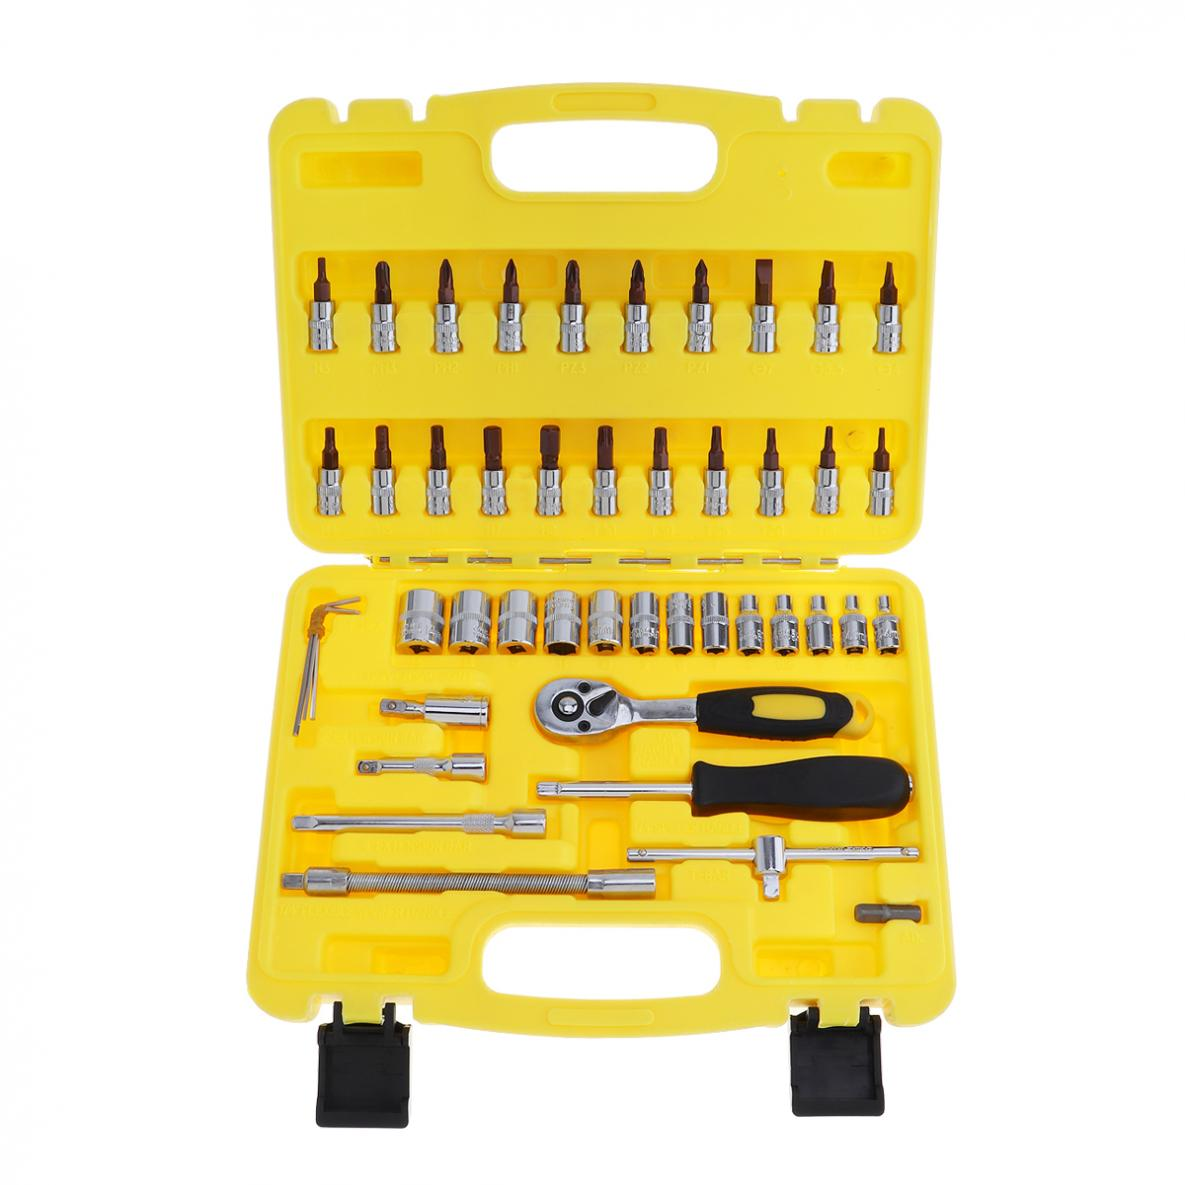 46pcs Repair Tool Box Precision 1/4 Sleeve Socket Wrench Set Ratchet Torque Wrench Combo Tool Kit for Motorcycle Auto Repairing